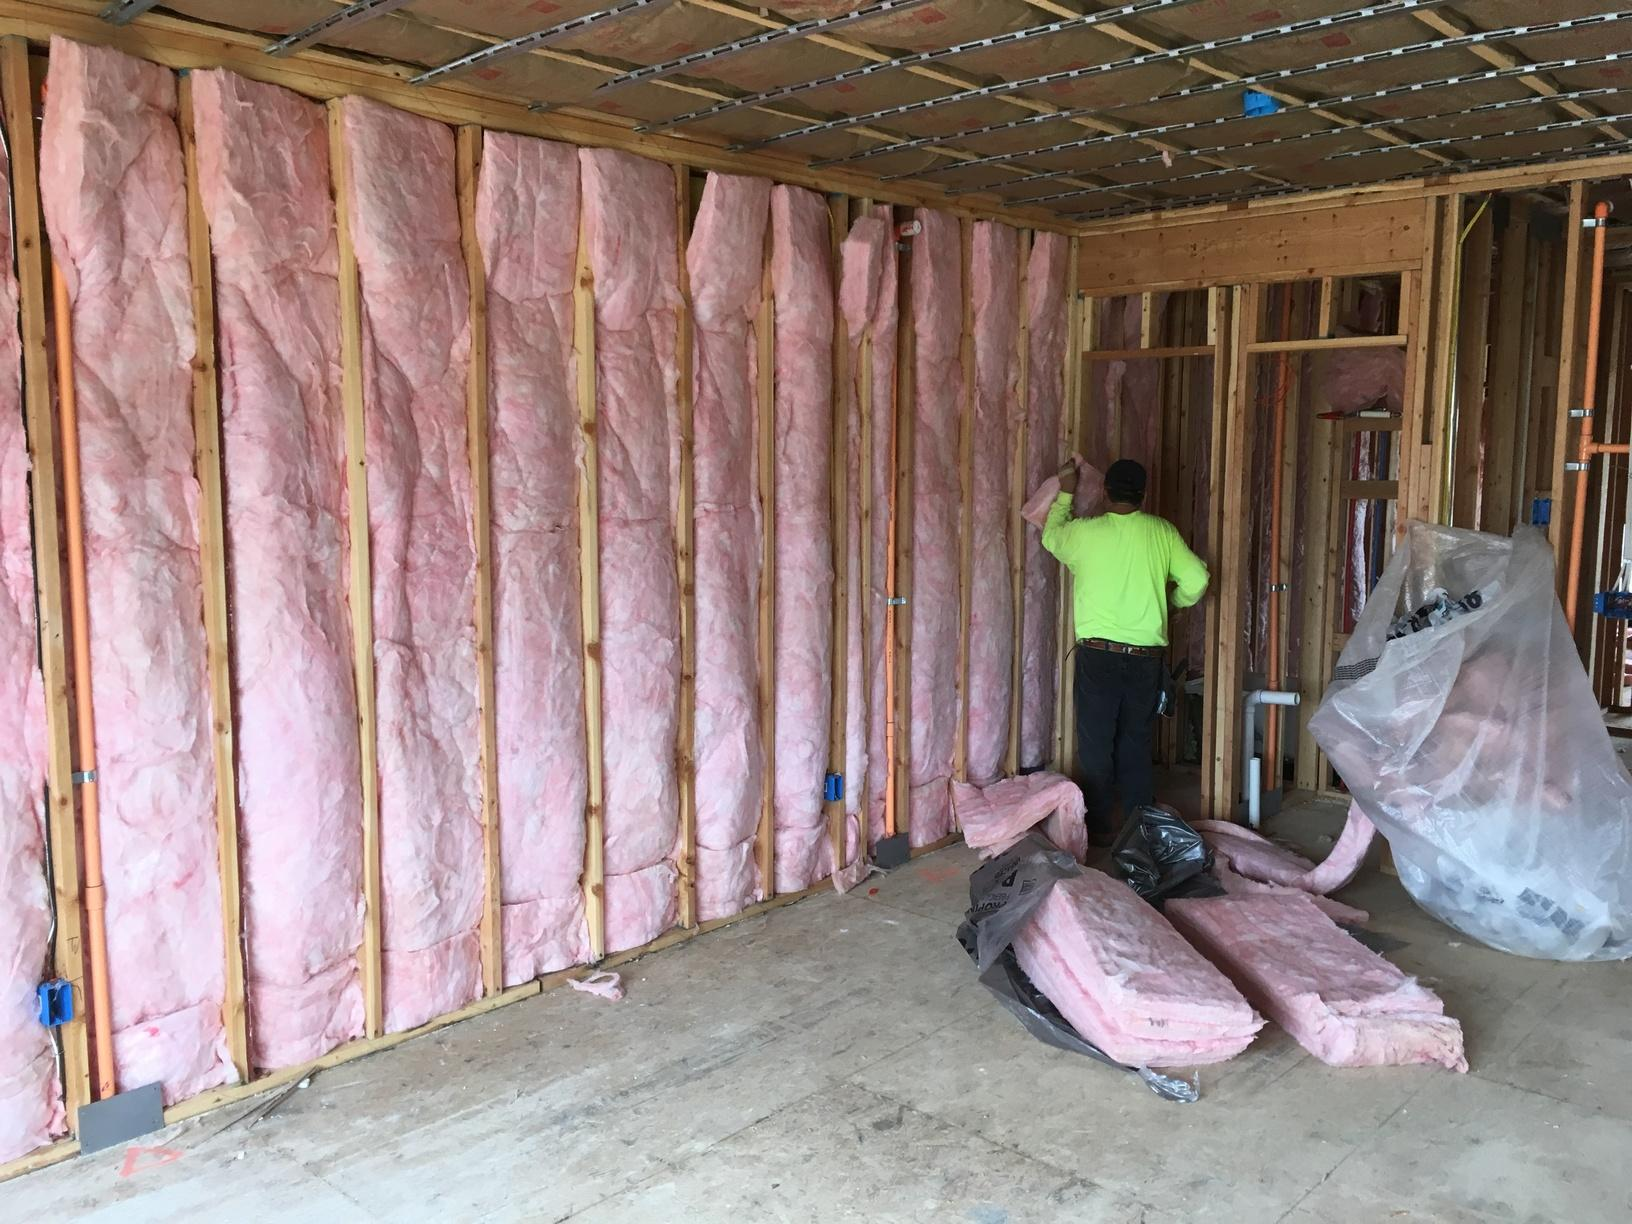 Walls Between Town Homes Still Need Insulation! - After Photo